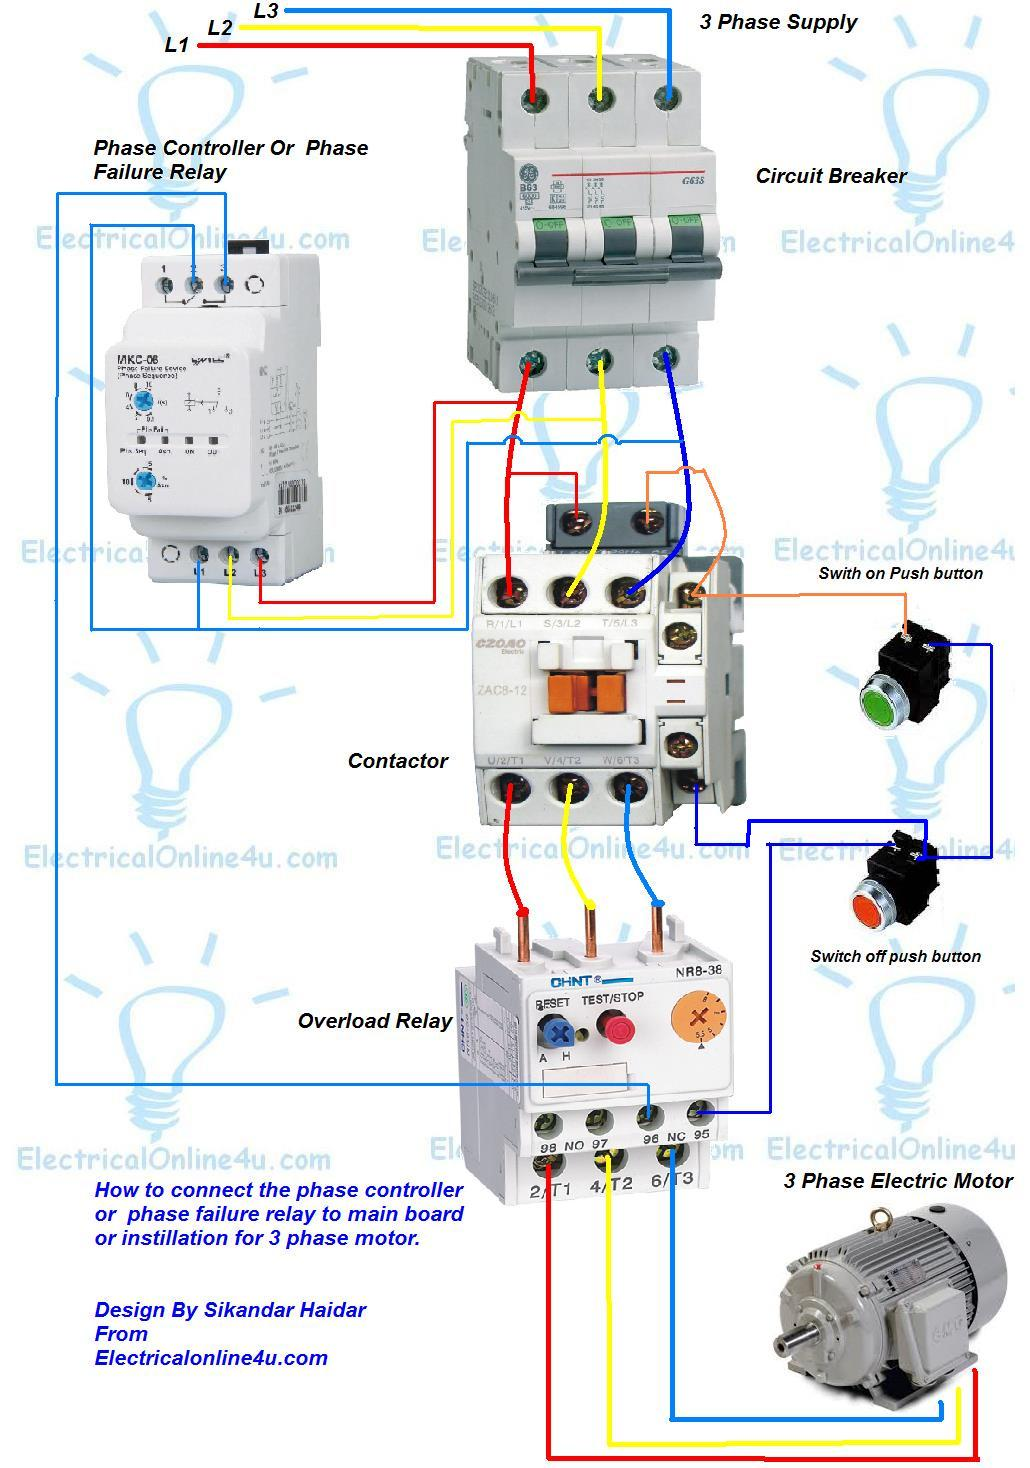 Phase%2Bfailure%2Brelay%2B %2Bphase%2Bcontroller%2Binstilaion%2Bin%2B3%2Bphase%2BMain%2Bboard%2Bor%2Bfor%2B3%2Bphase%2Bmotor phase controller wiring phase failure relay diagram electrical 3 phase contactor wiring diagram at gsmportal.co